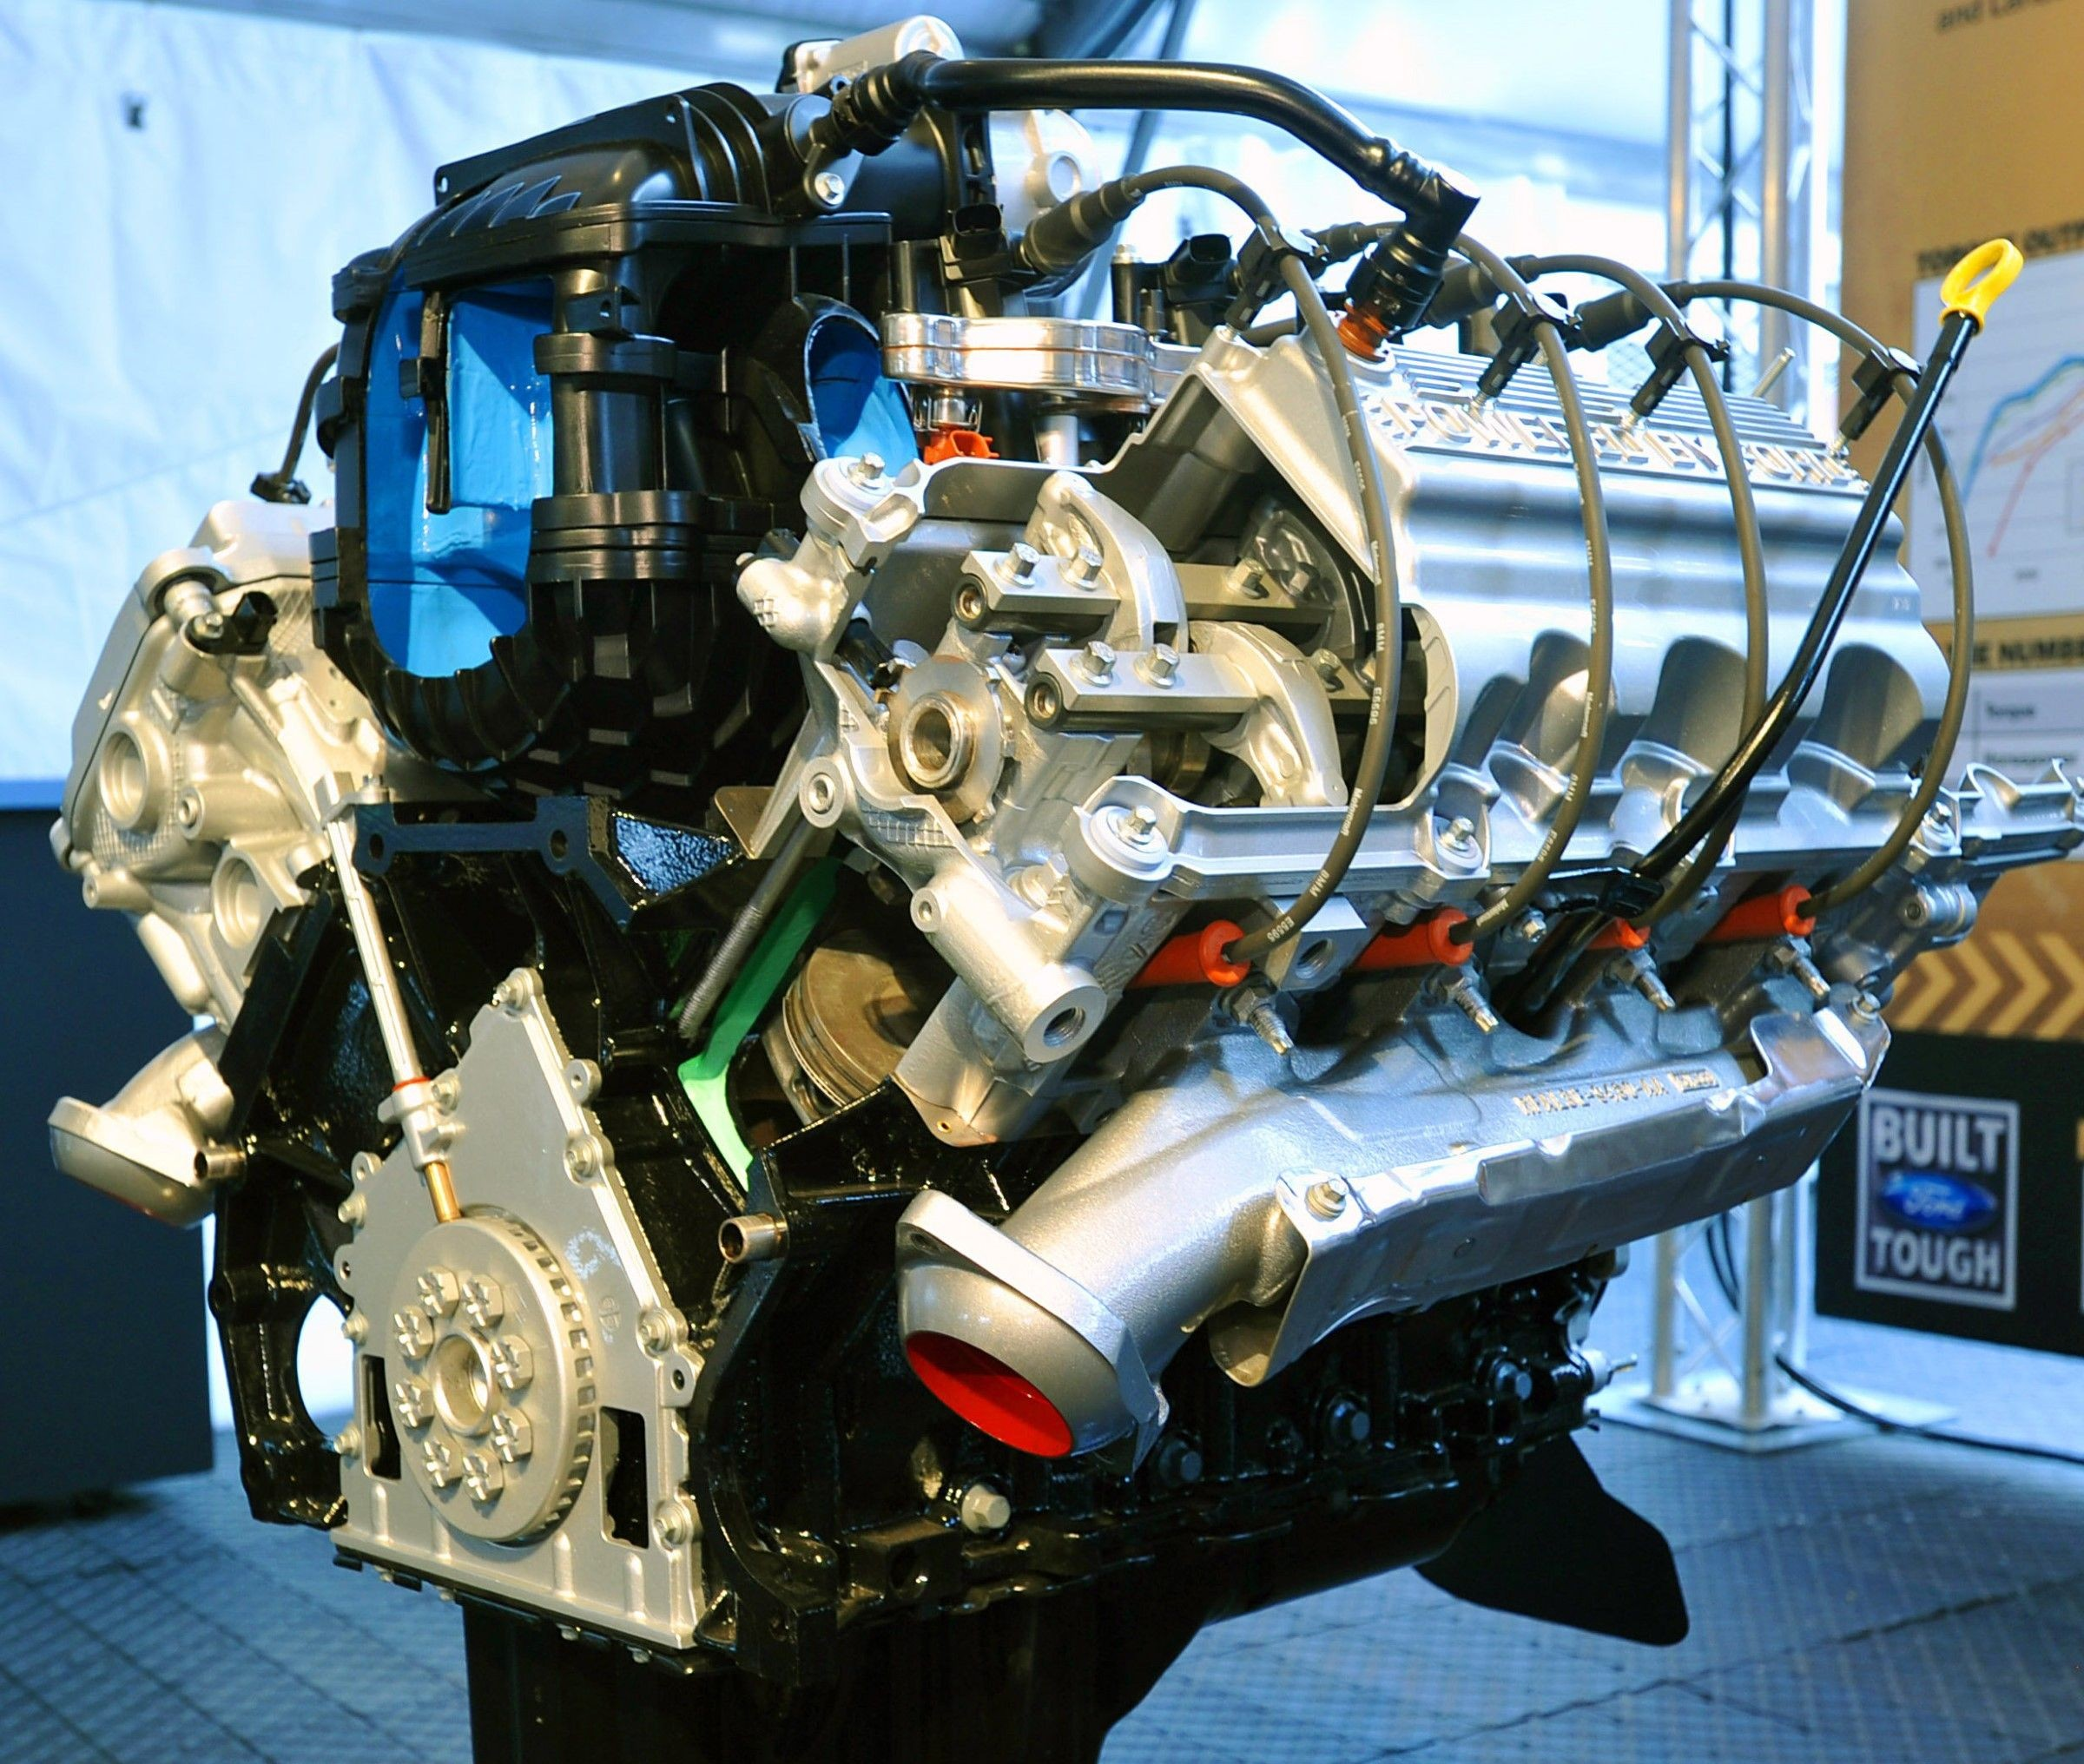 V8 Car Engine Diagram Bmw Vs Mercedes Audi Engines My Wiring Related Post